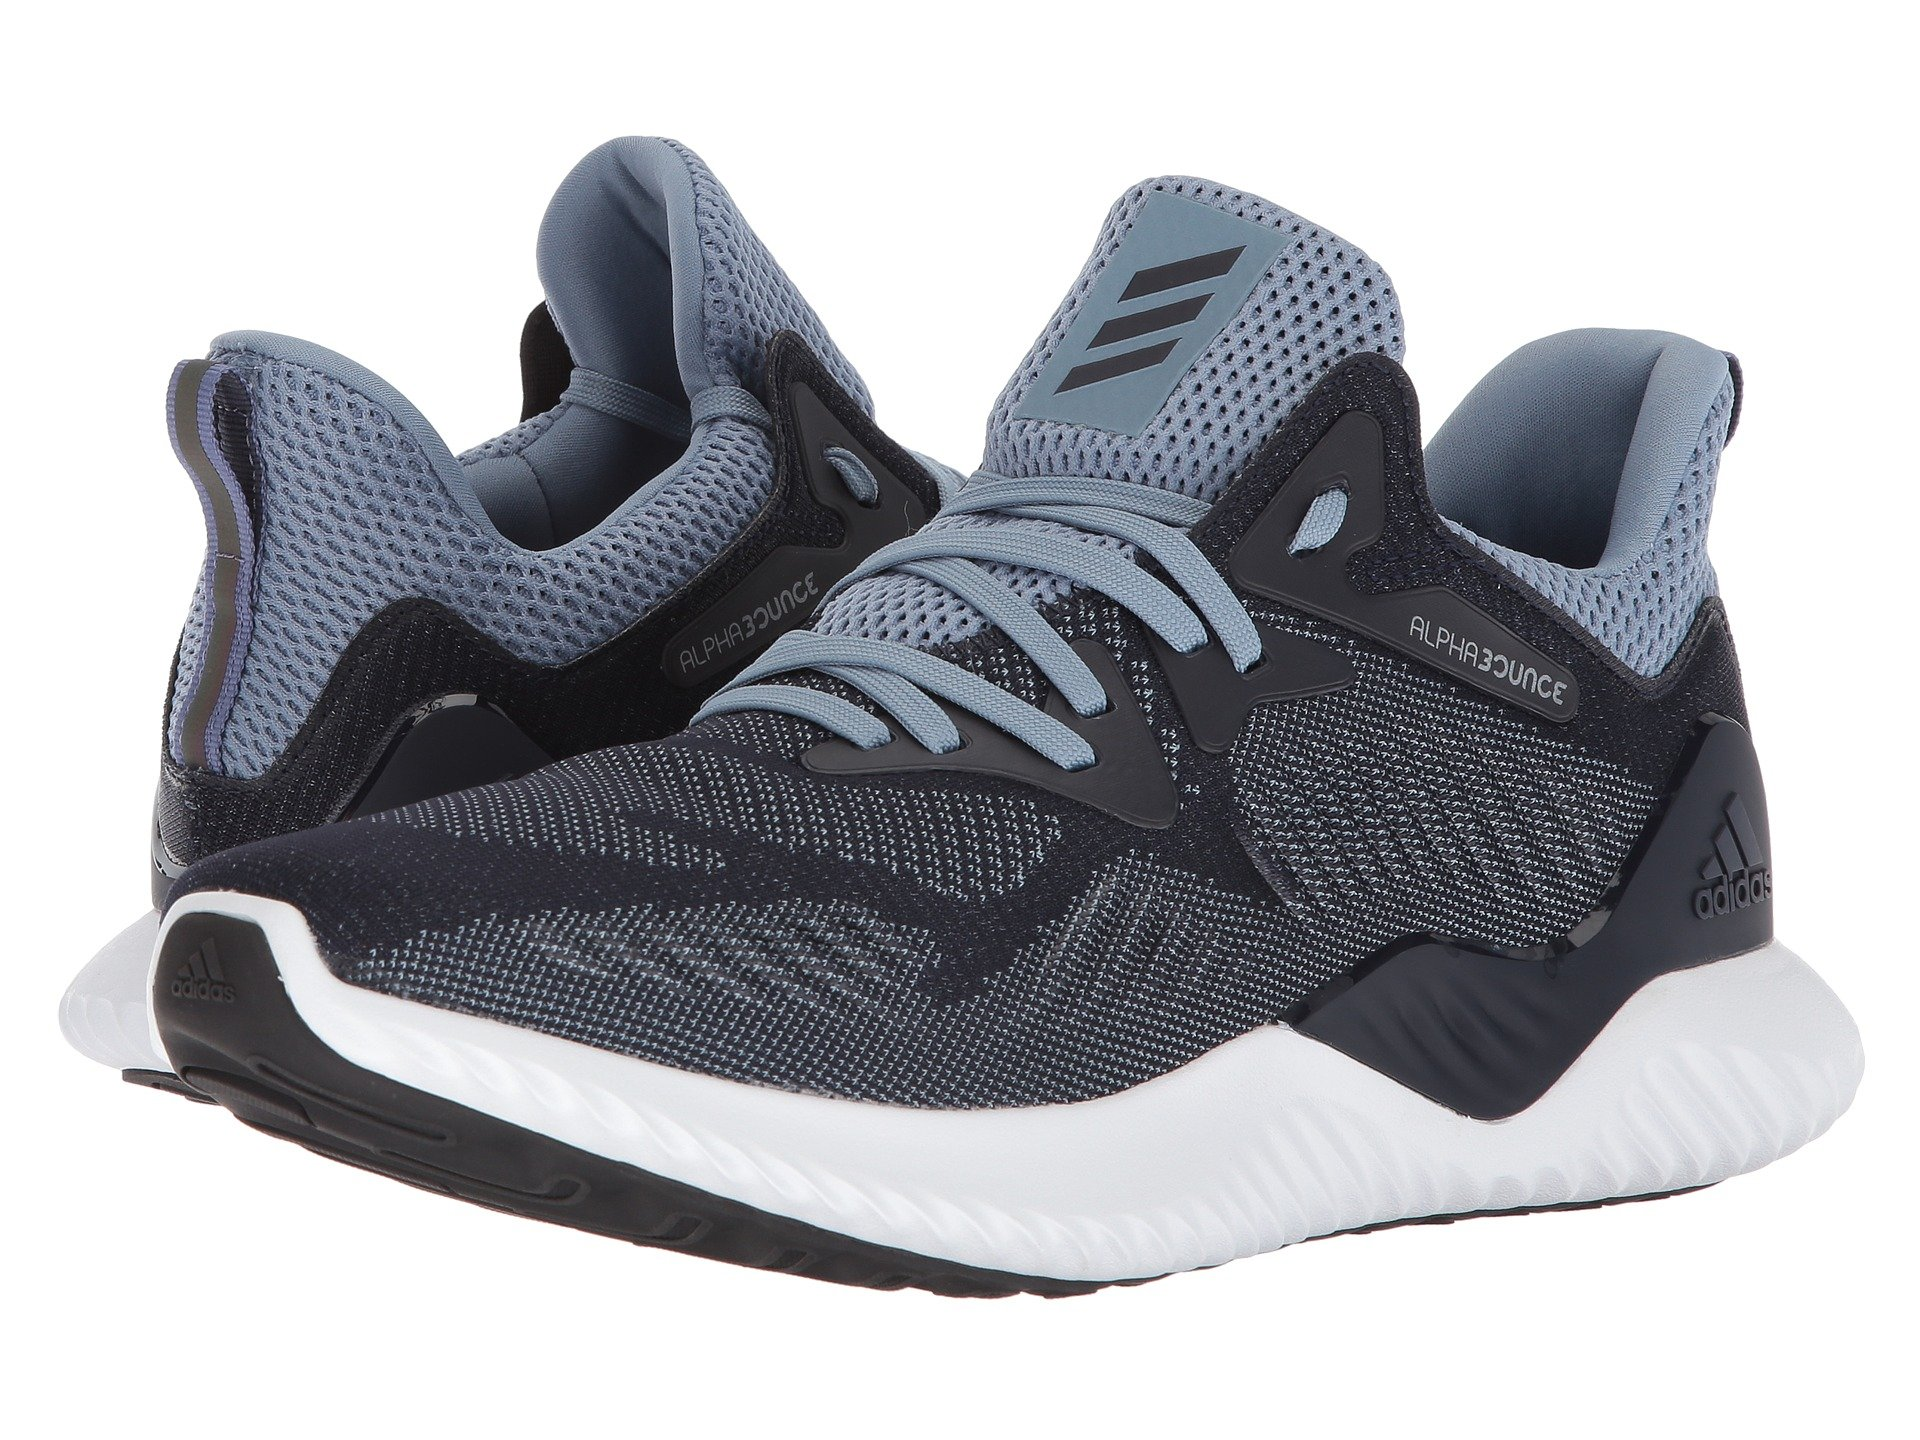 info for c5436 2ad4f adidas Running Alphabounce Beyond at Zappos.com